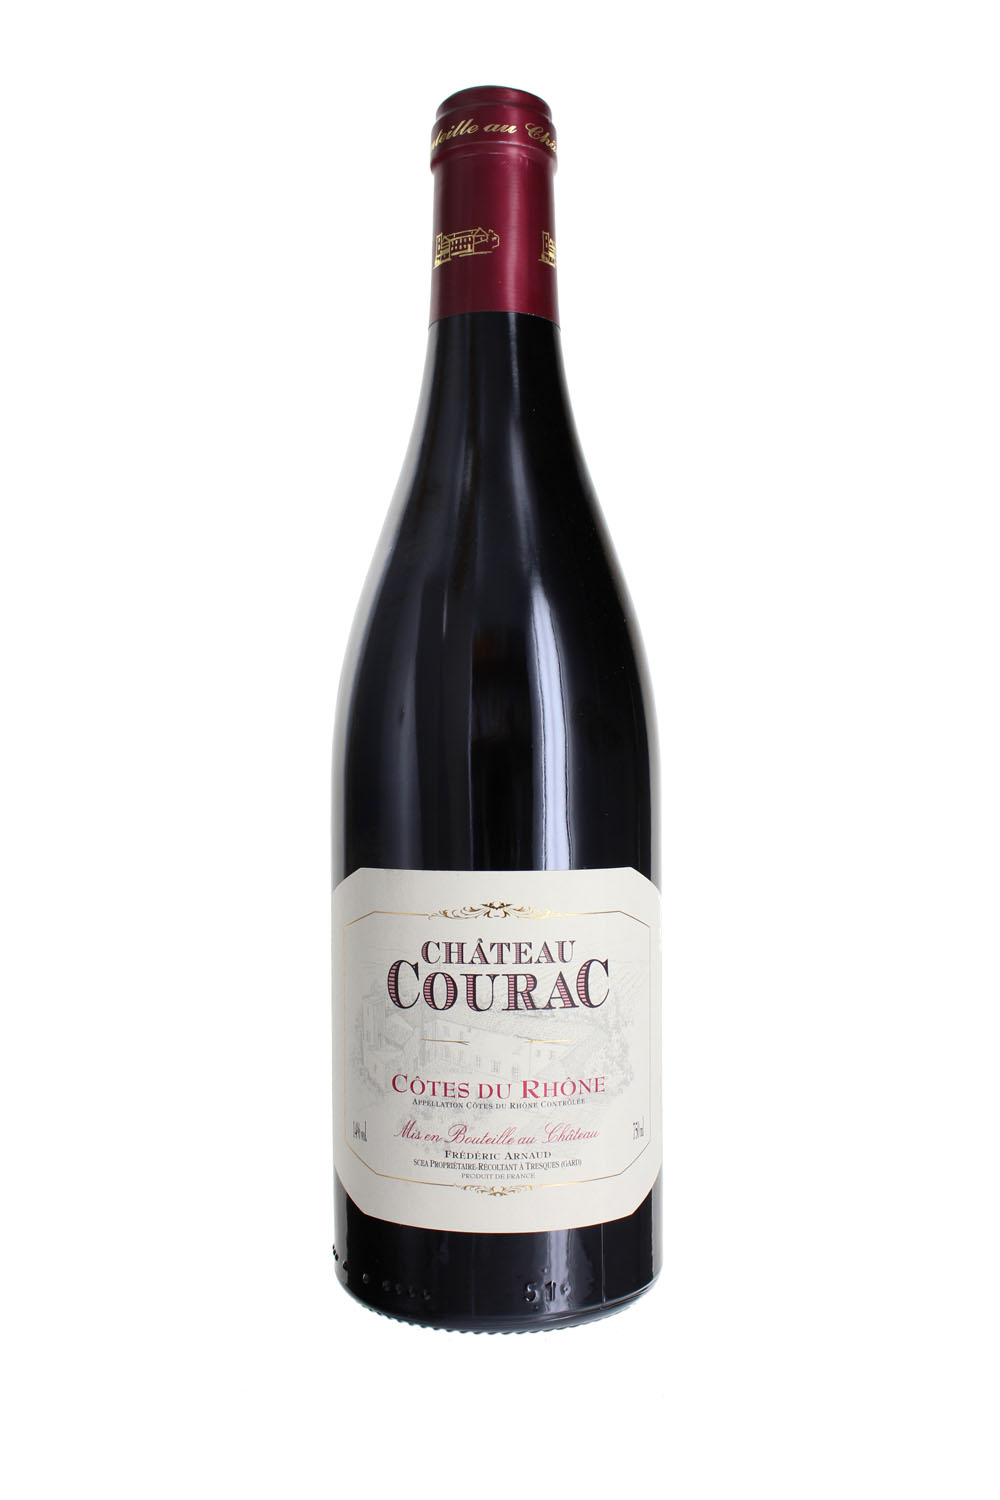 Chateau Courac, Cotes du Rhone, France, 2016